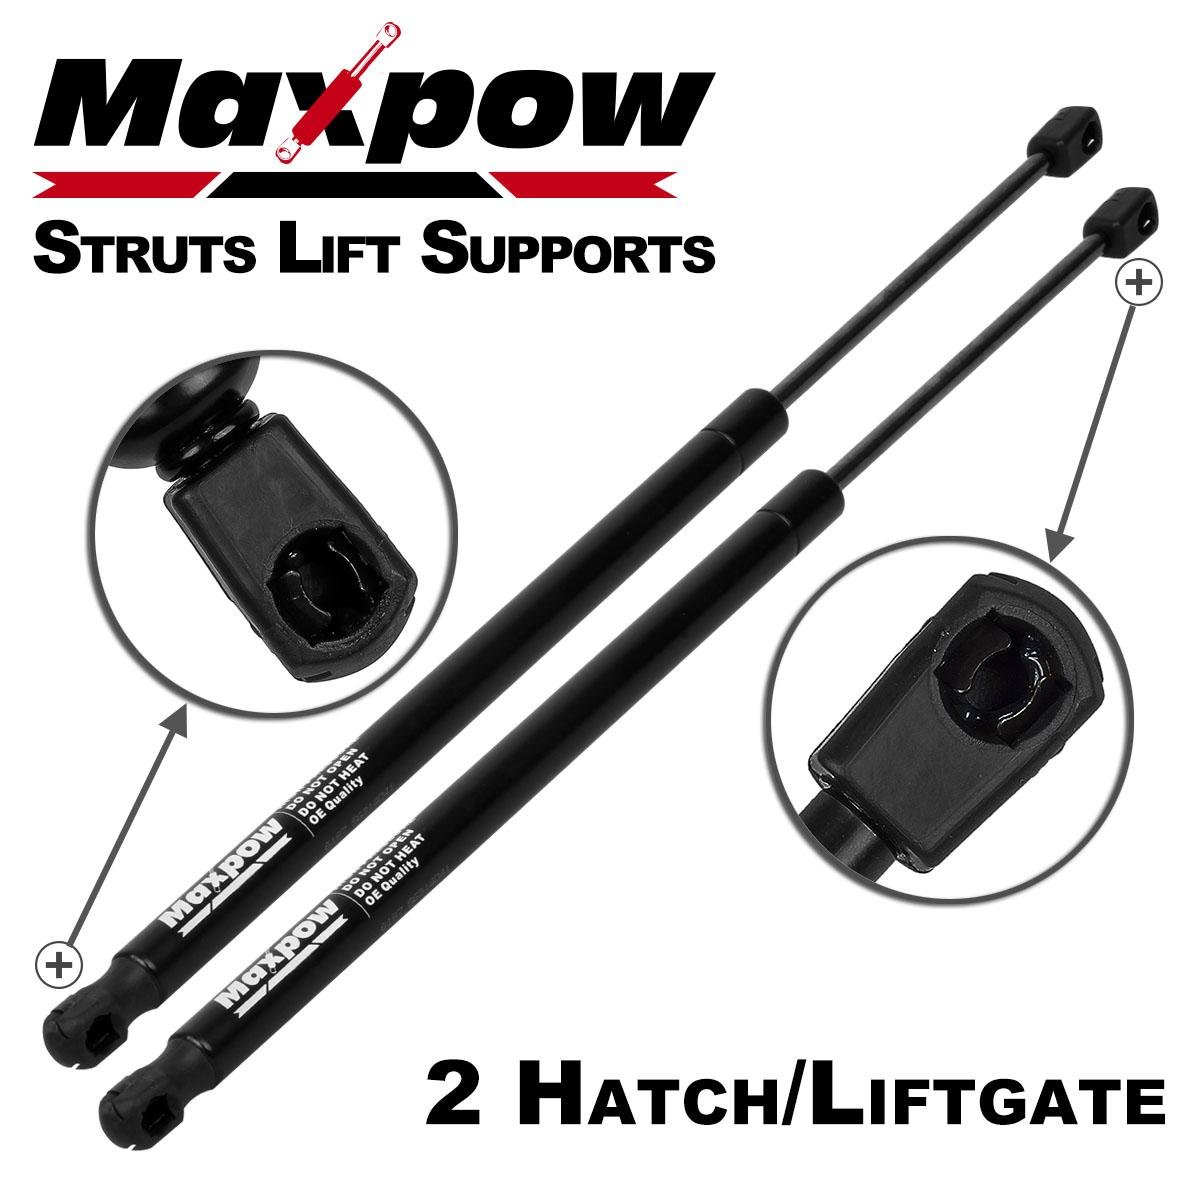 Maxpow 2 Rear Compatible With Honda Pilot 2003 2004 2005 2006 2007 Hatch Struts Lift Support Gas Spring Shocks 4373